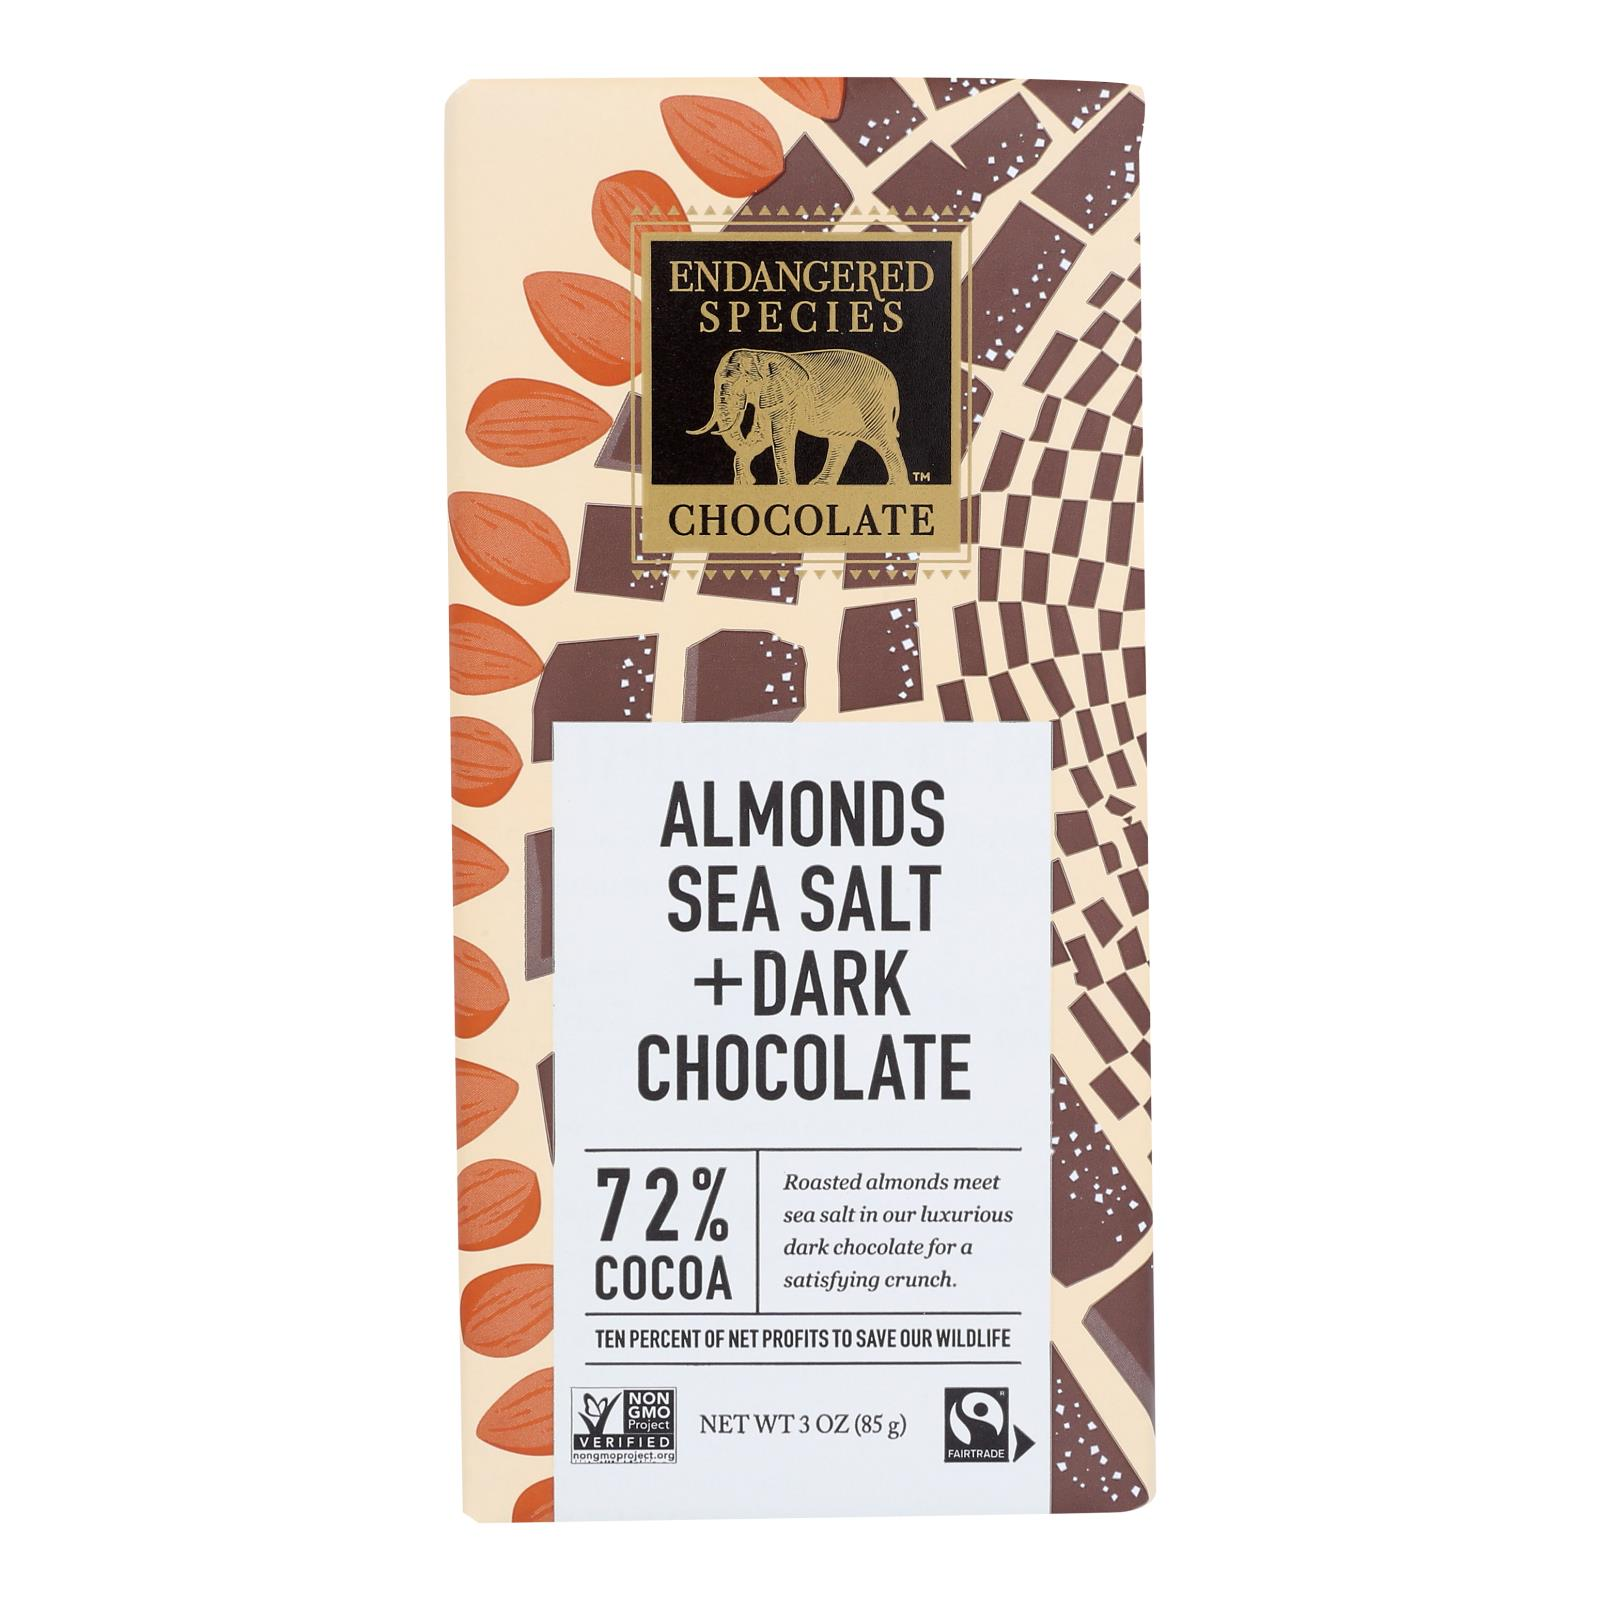 Endangered Species Natural Chocolate Bar - Dark Chocolate - 72 Percent Cocoa - Sea Salt and Almonds - 3 oz Bars - Case of 12